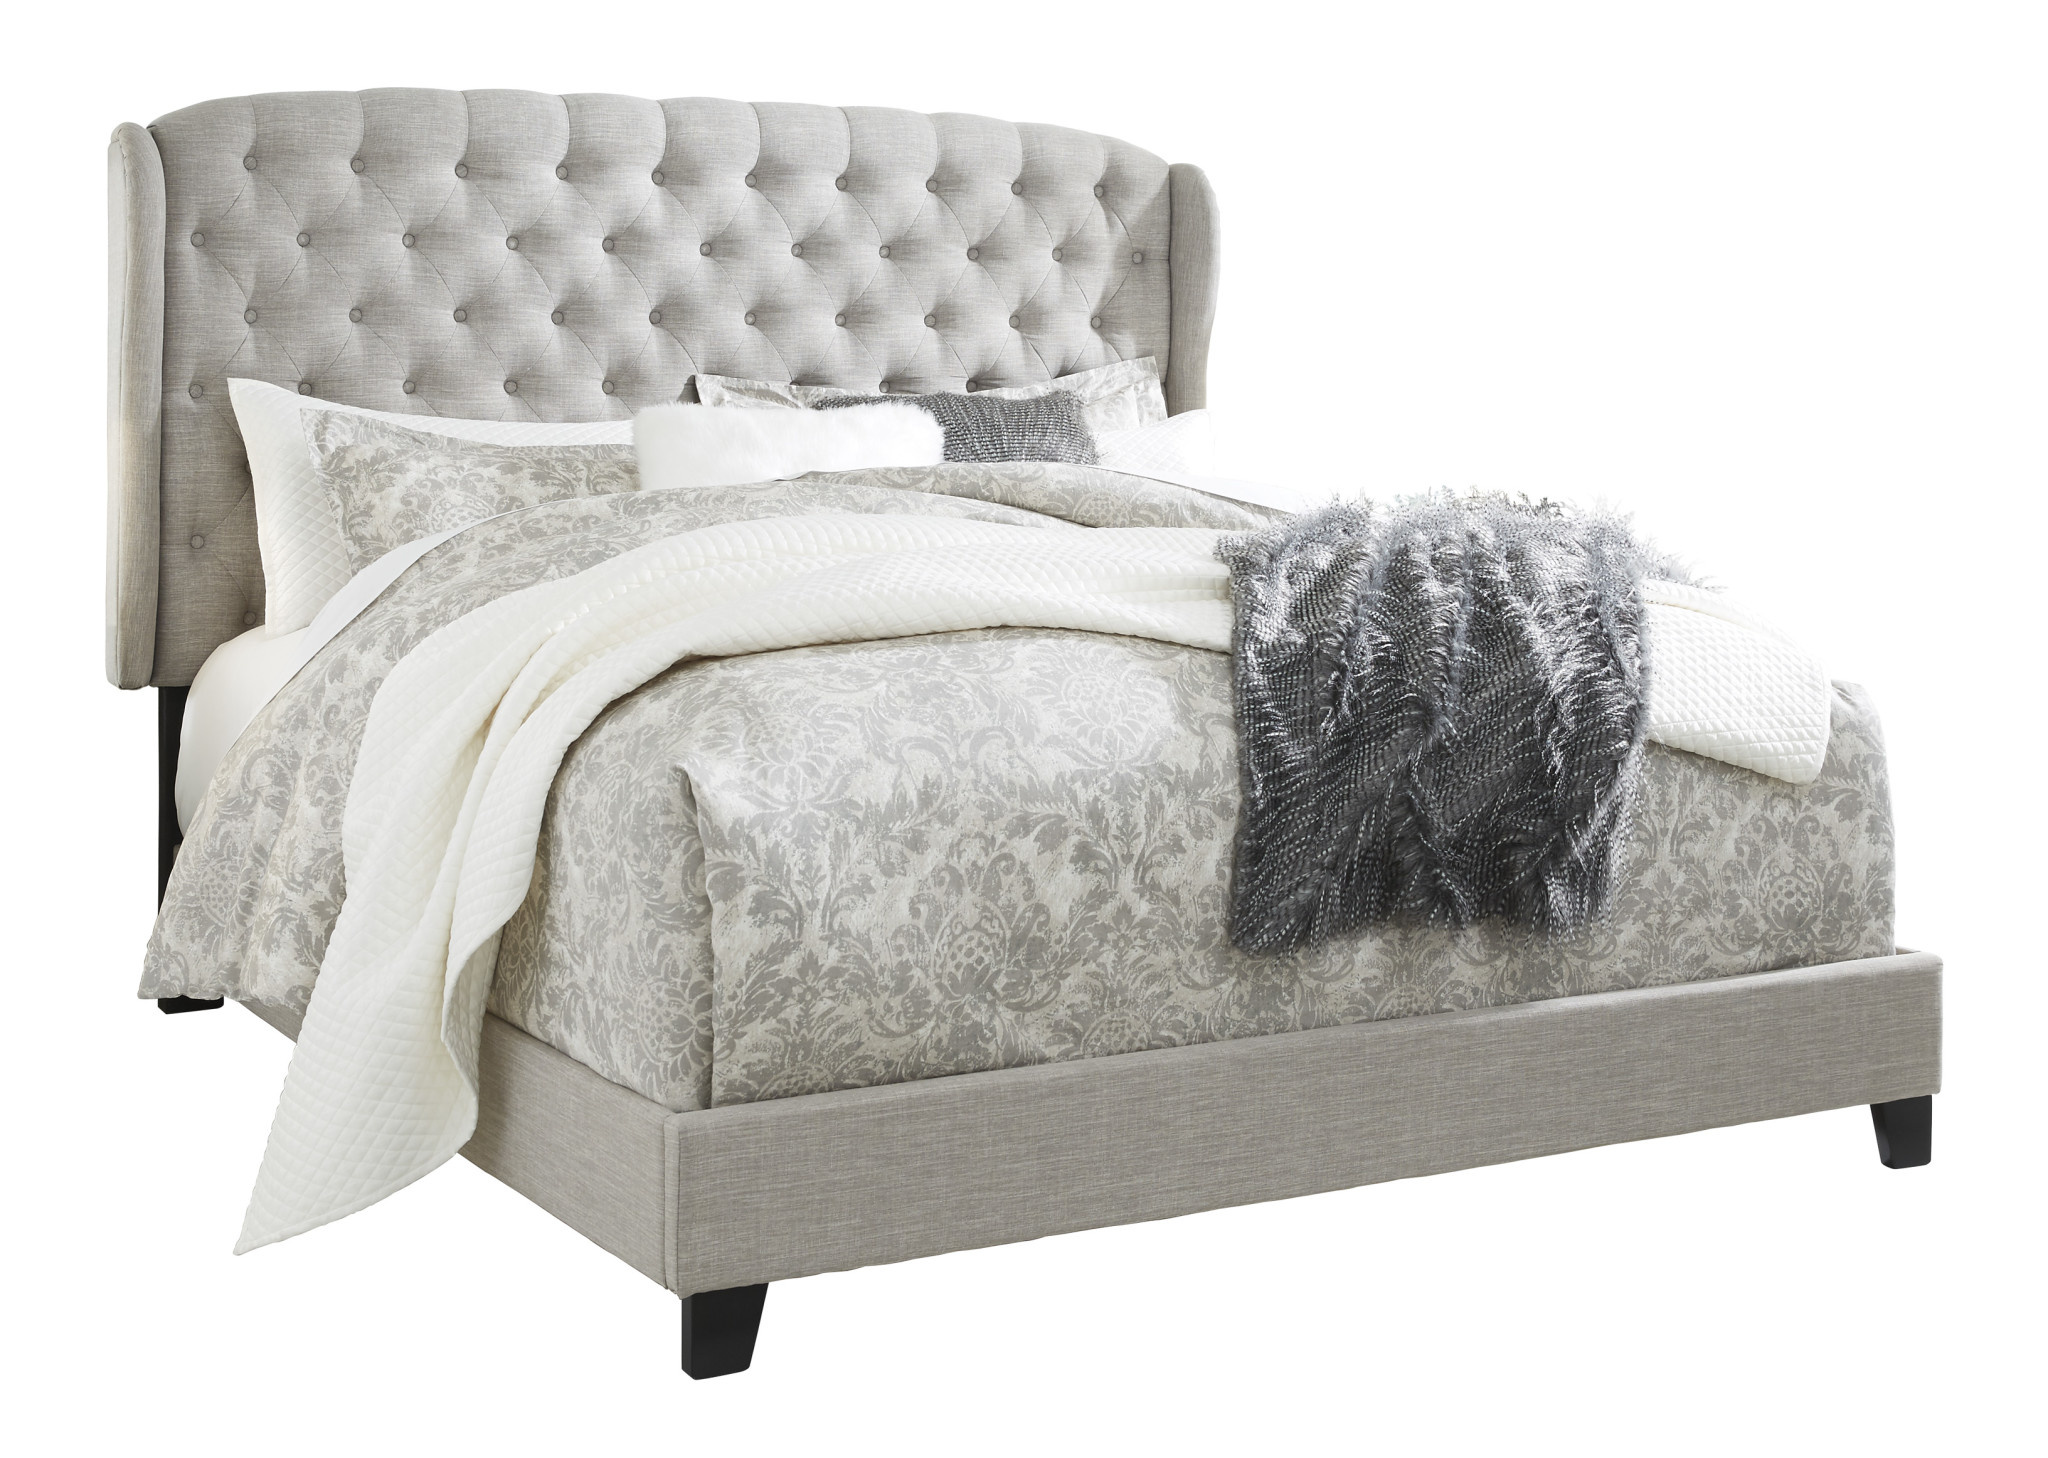 Signature Design King Upholstered Bedframe, Jerary, Light Gray, B090-982